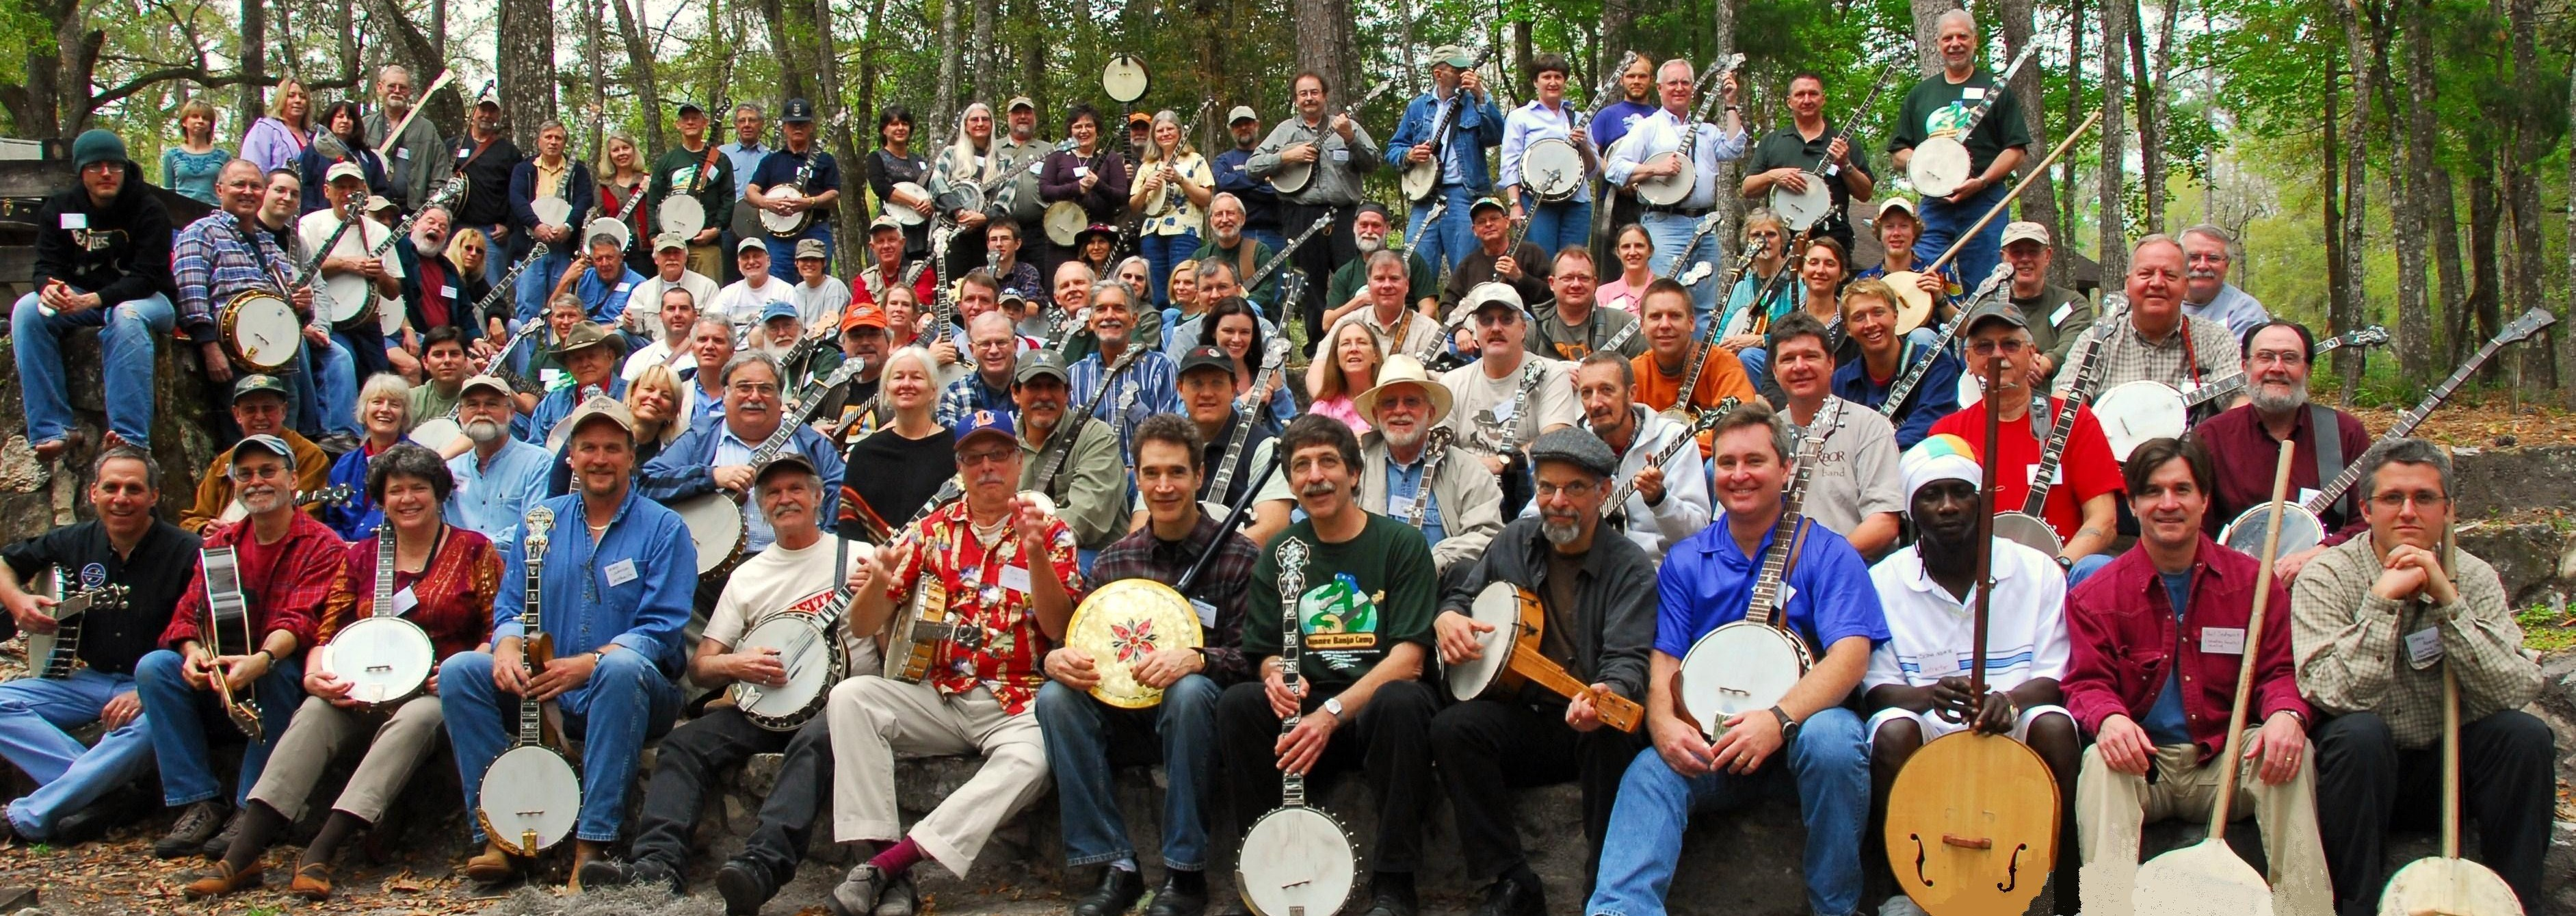 32suwannee-banjo-camp-2008-photos-by-scott-anderson-139b